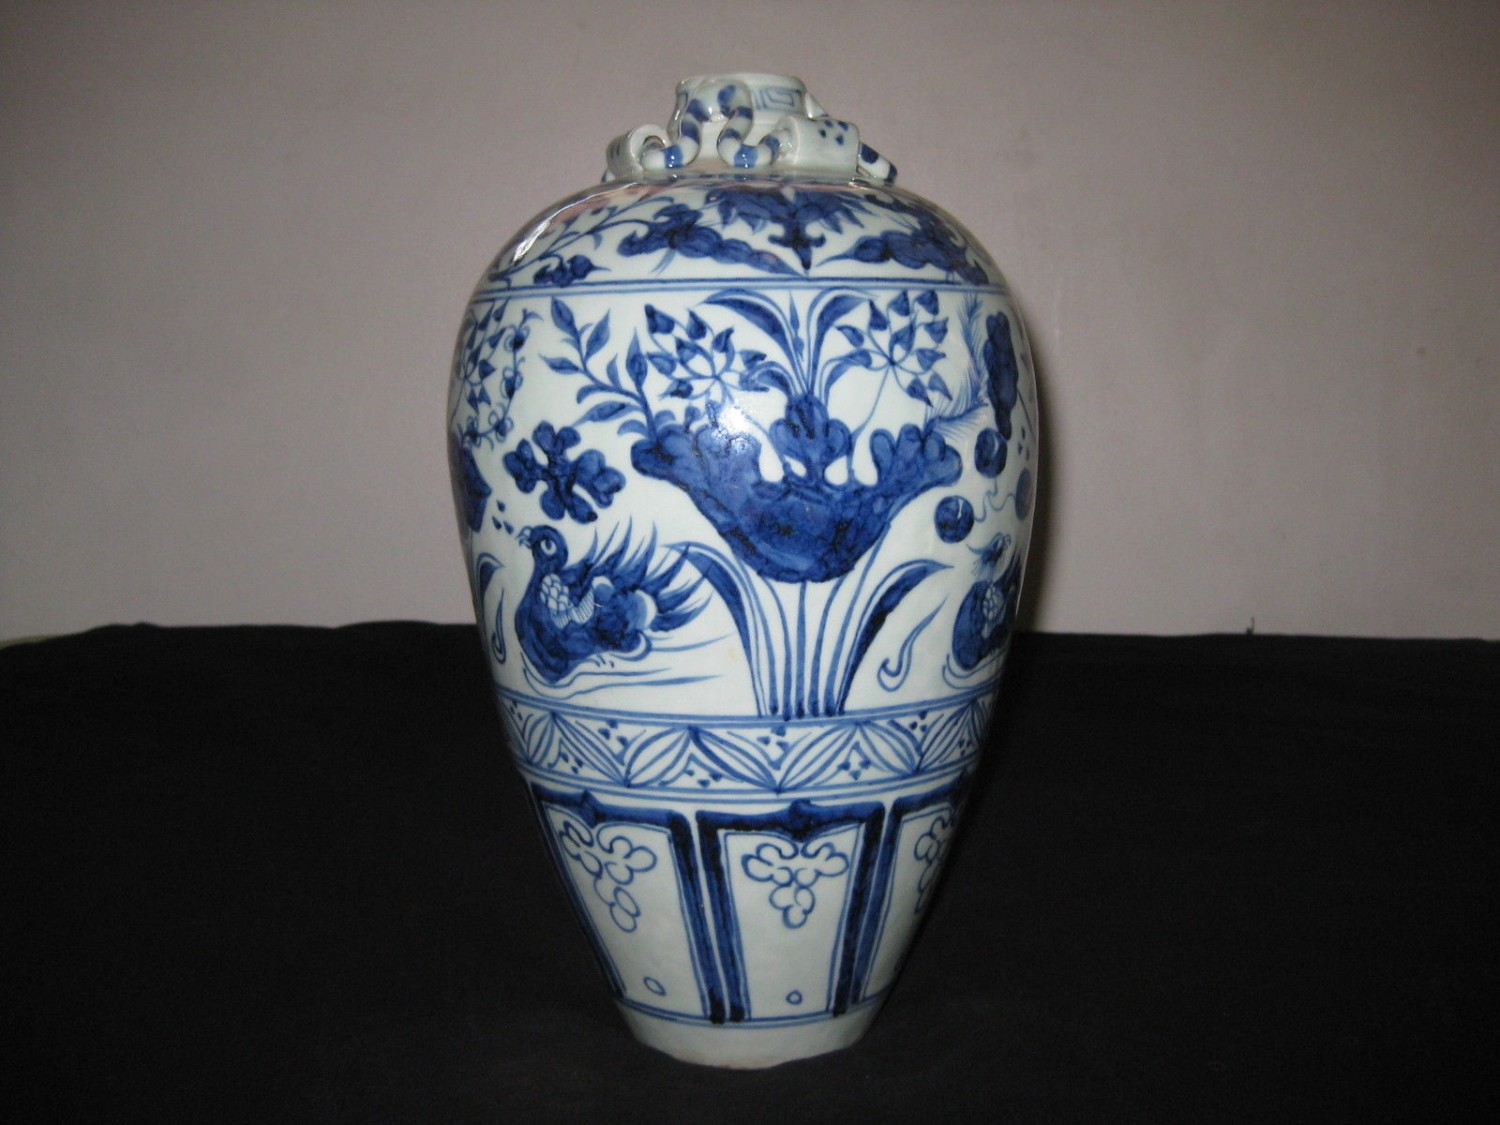 ANTIQUE CHINESE BLUE & WHITE PORCELAIN VASES, 19TH CENTURY, NR.